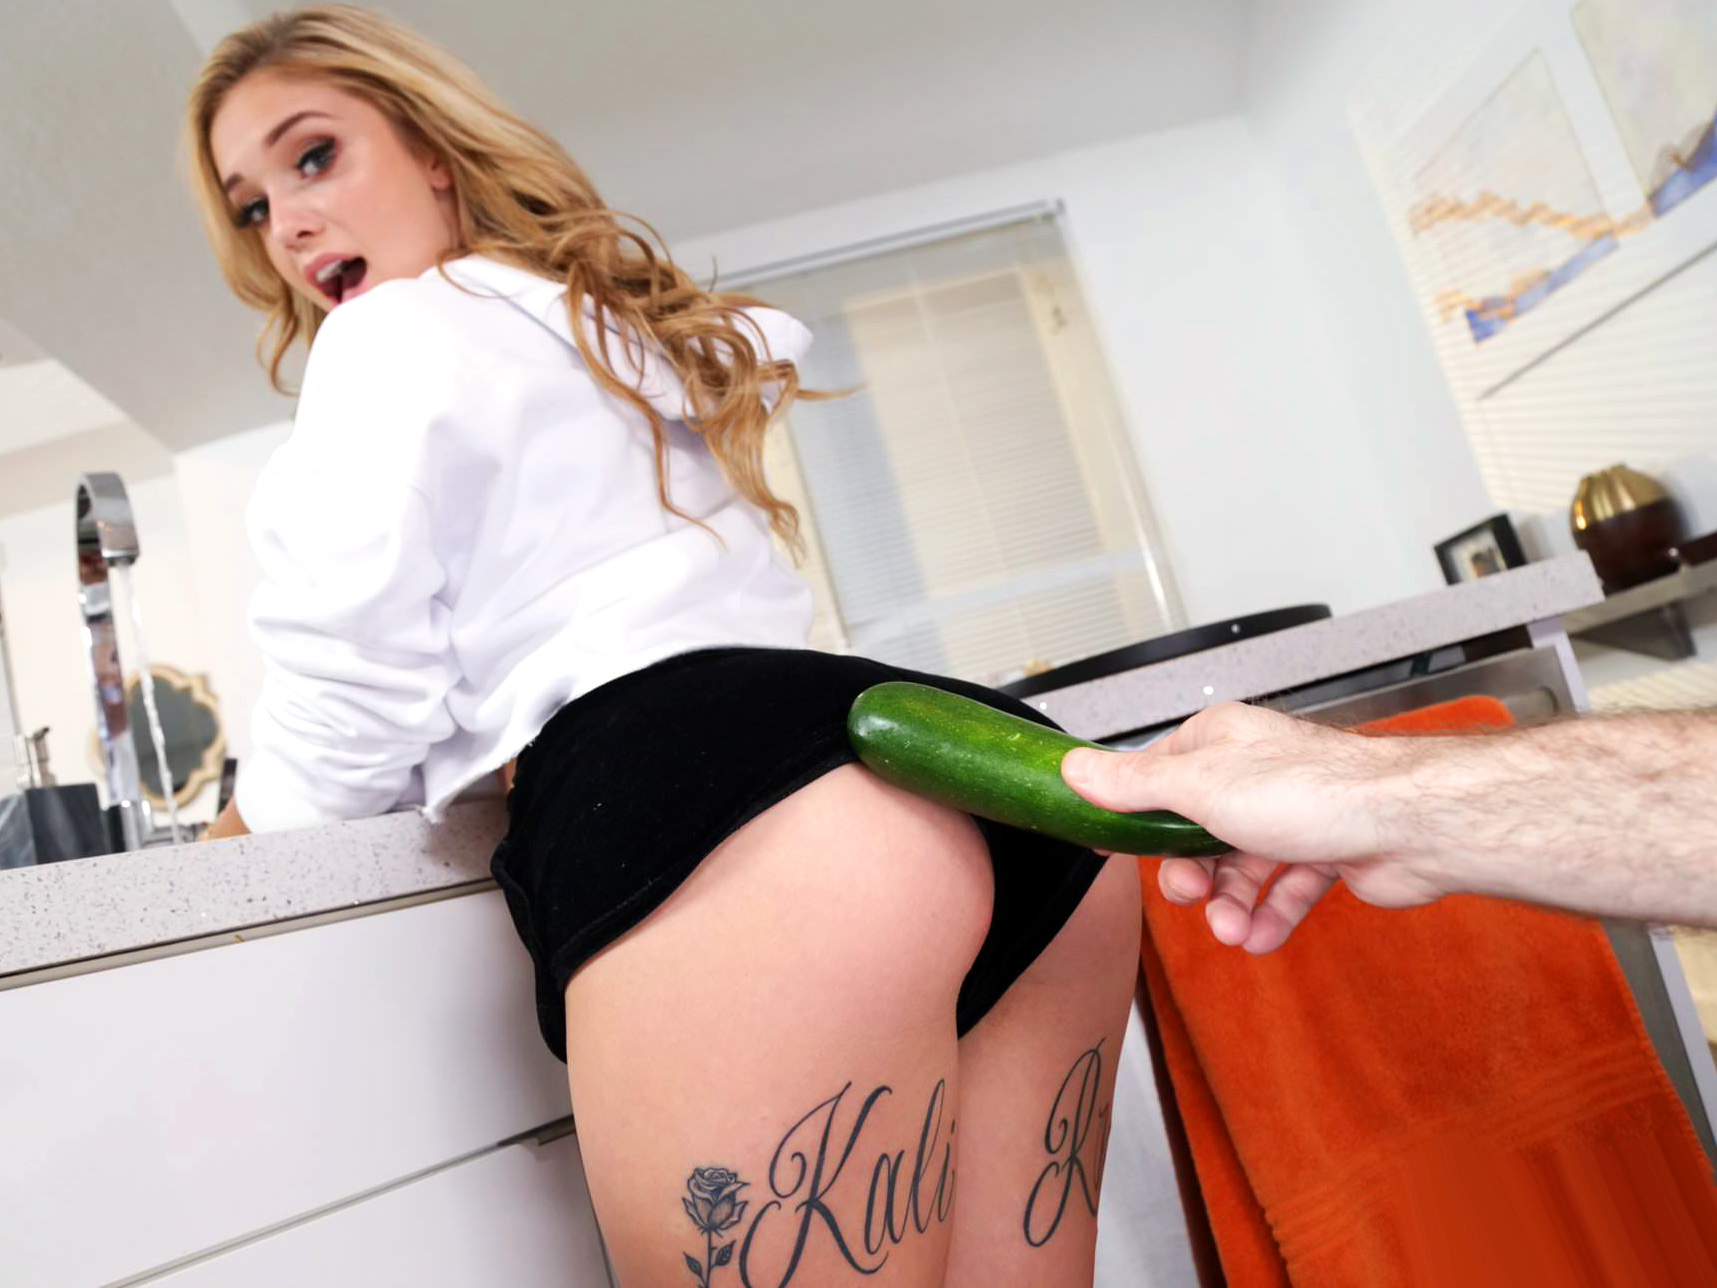 I Know That Girl Kali Roses Has Dick For Dinner